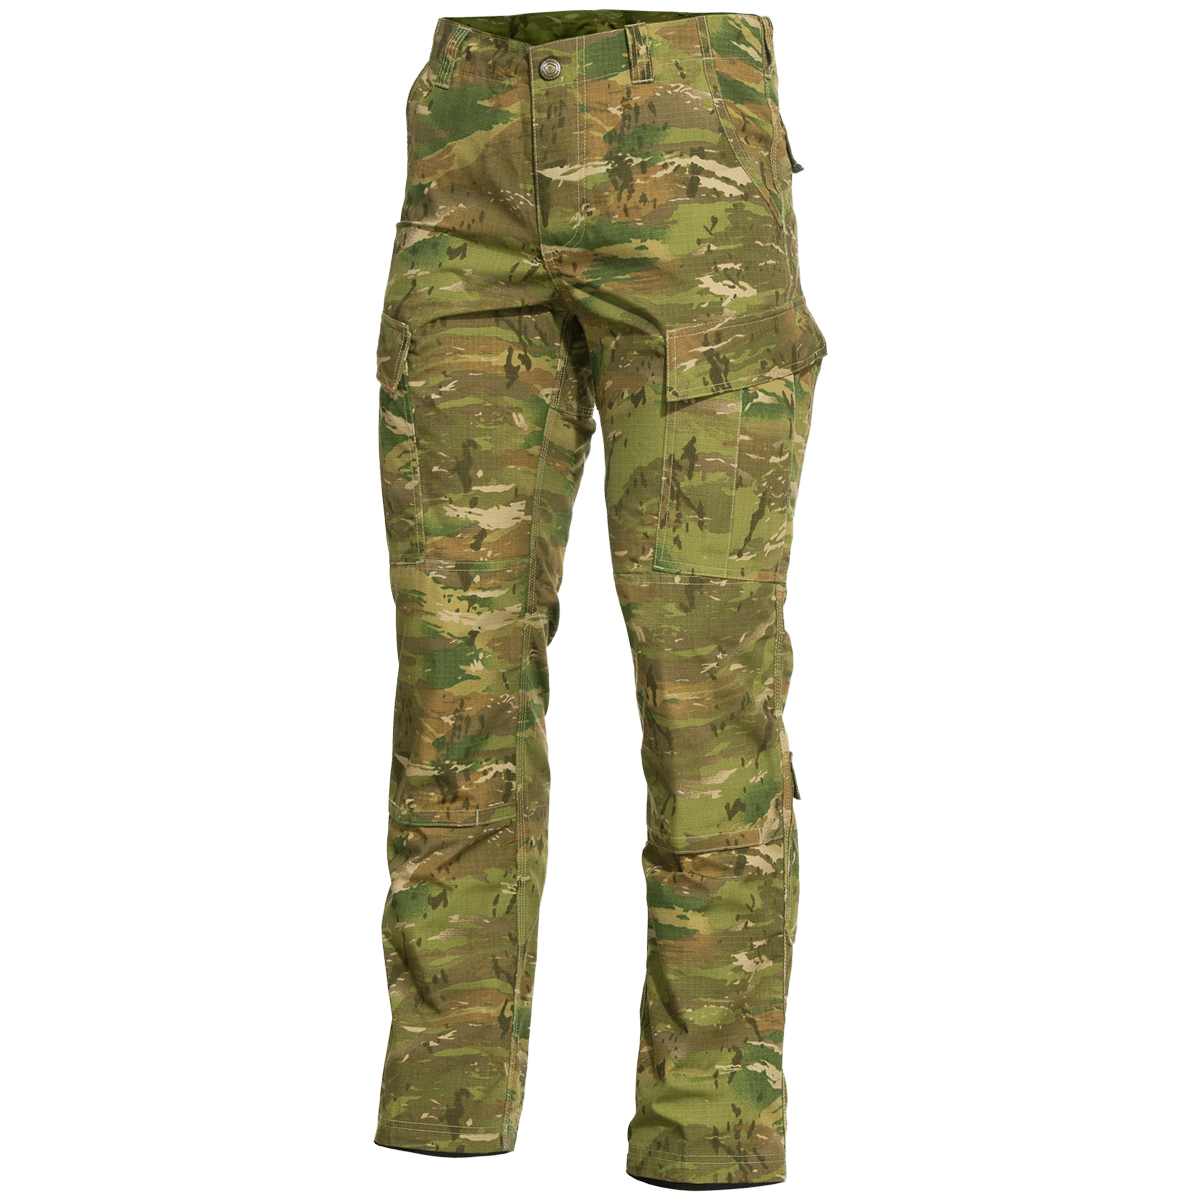 Combat Trousers and Shorts We have a Fantastic Selection of Combat Trousers, Army Combat Shorts, Camo Trousers, Urban Shorts, Aviator Shorts, Moleskin Combats, Midnight Urban Trousers, Urban Trousers, M65 Combat Trousers, Navy Blue Trousers, Black Combats, army surplus combat trousers.